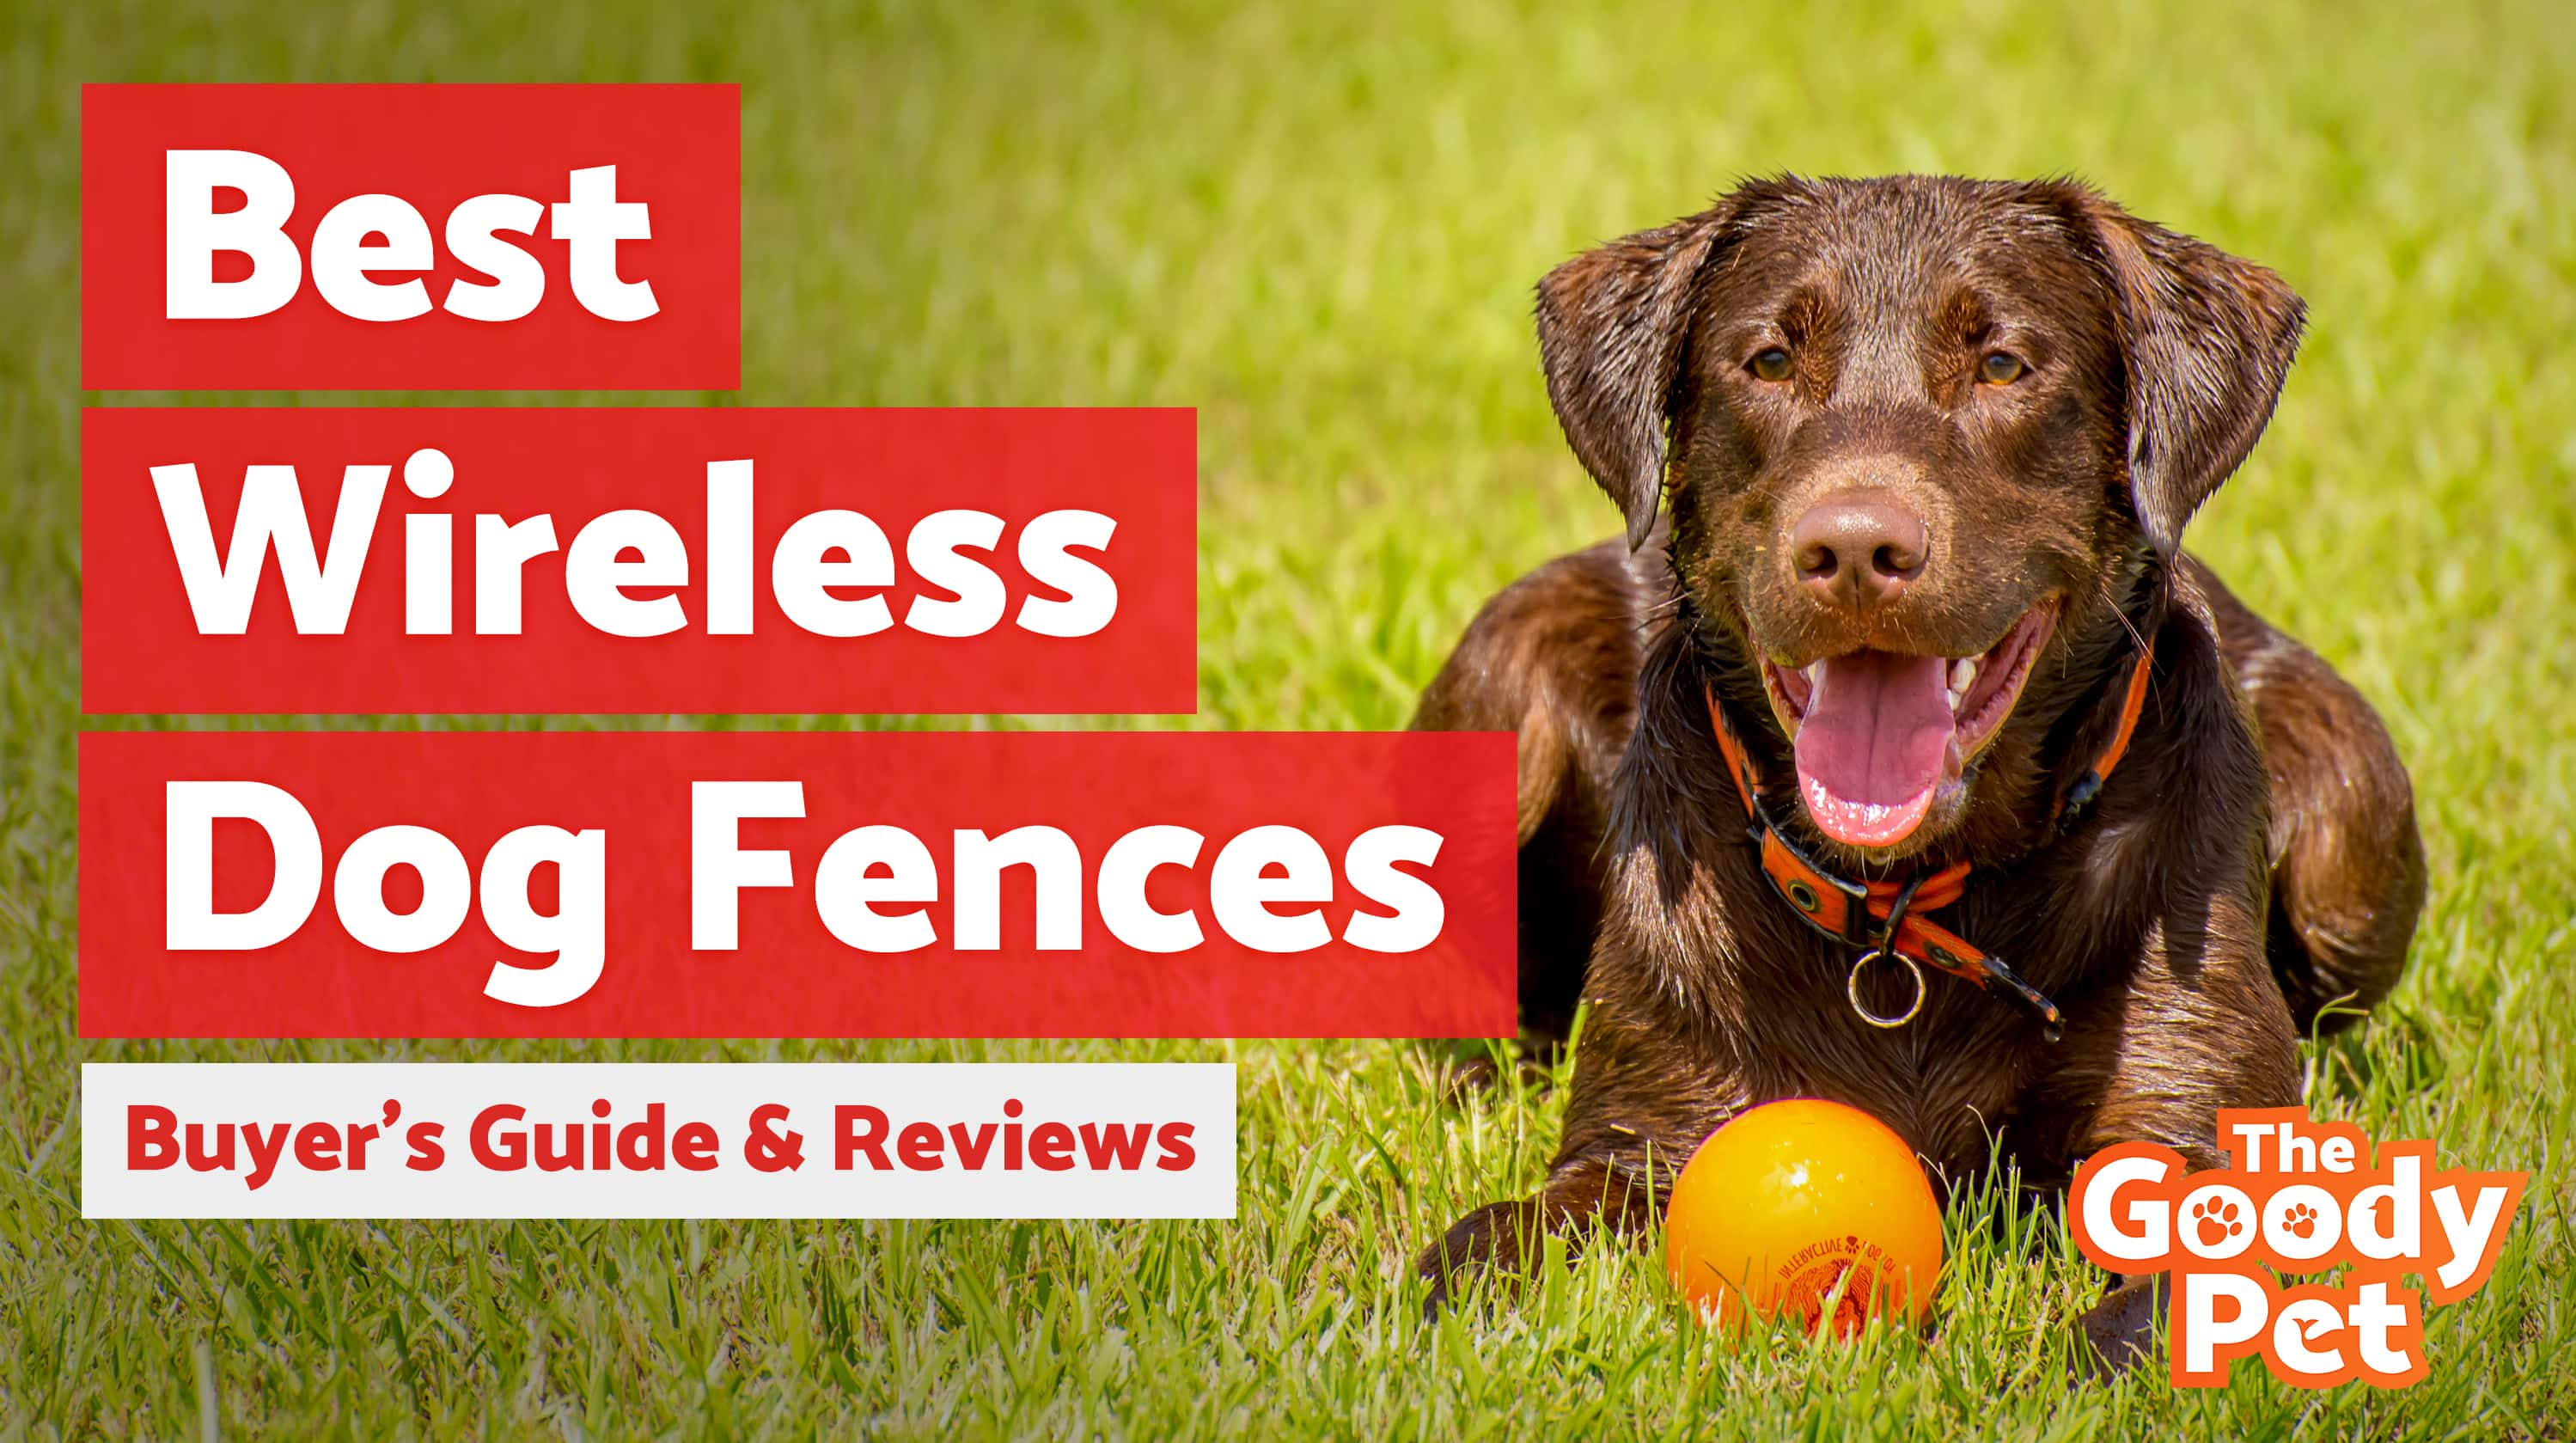 Best Wireless Dog Fence Systems April 2019 Buyers Guide And